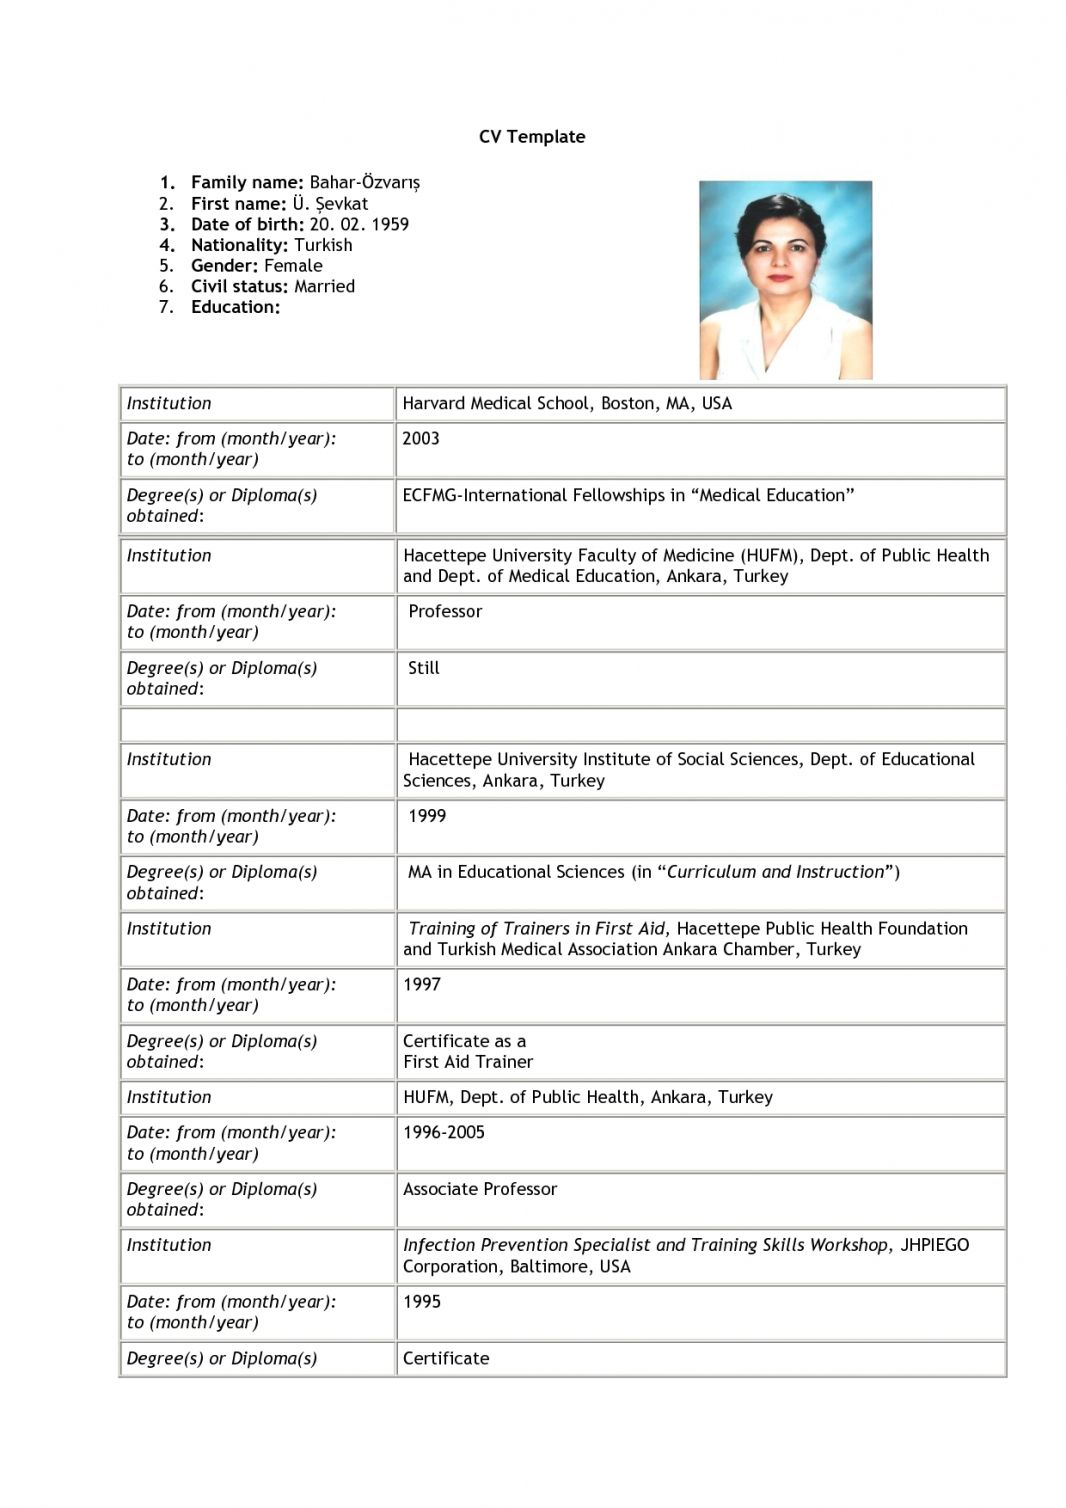 Job Interview Job resume format, Bio data for marriage